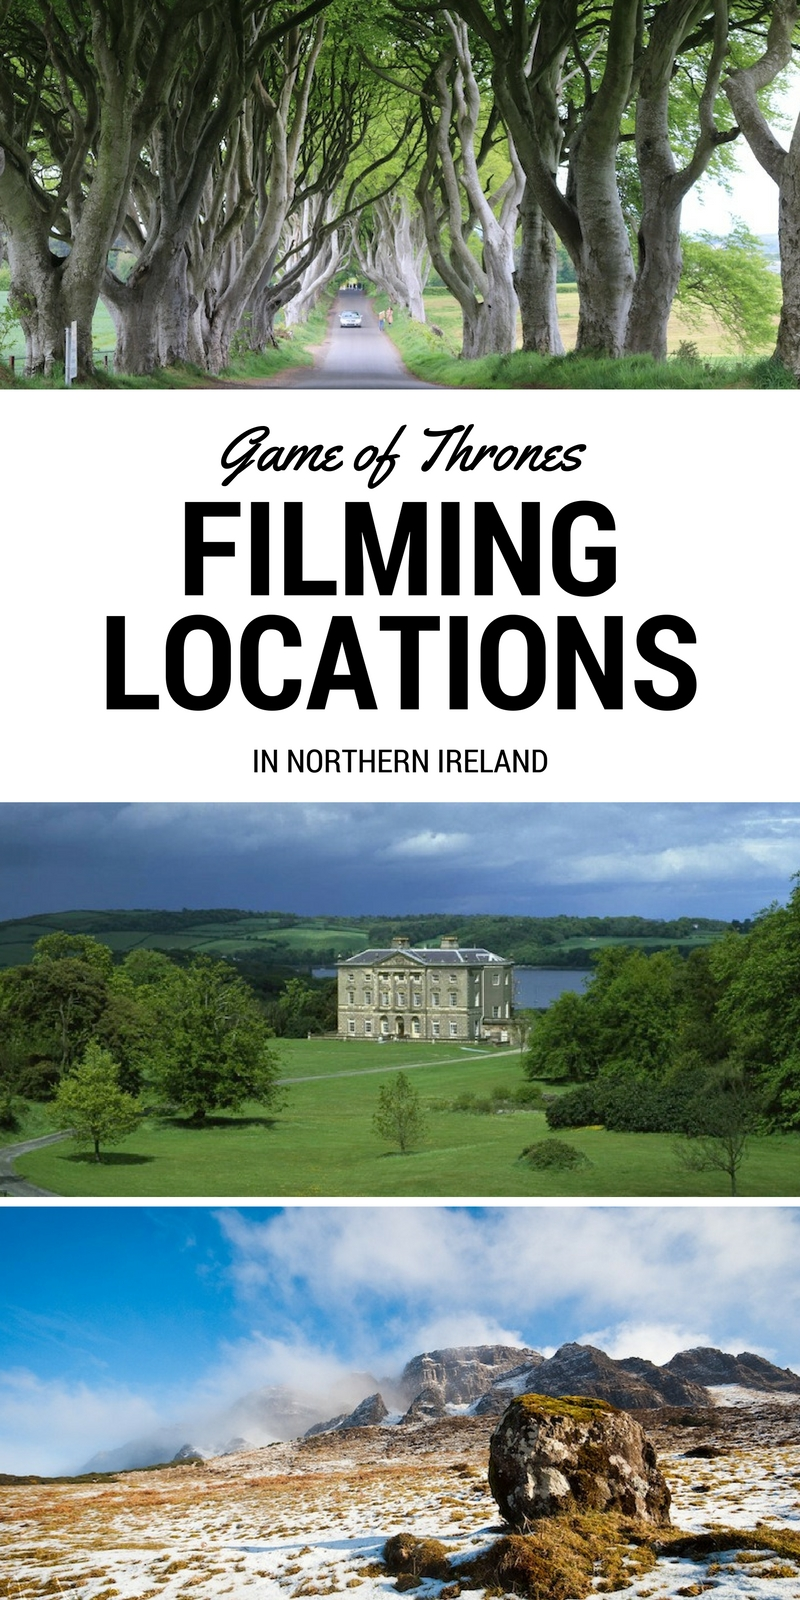 Game of Thrones film locations in Northern Ireland